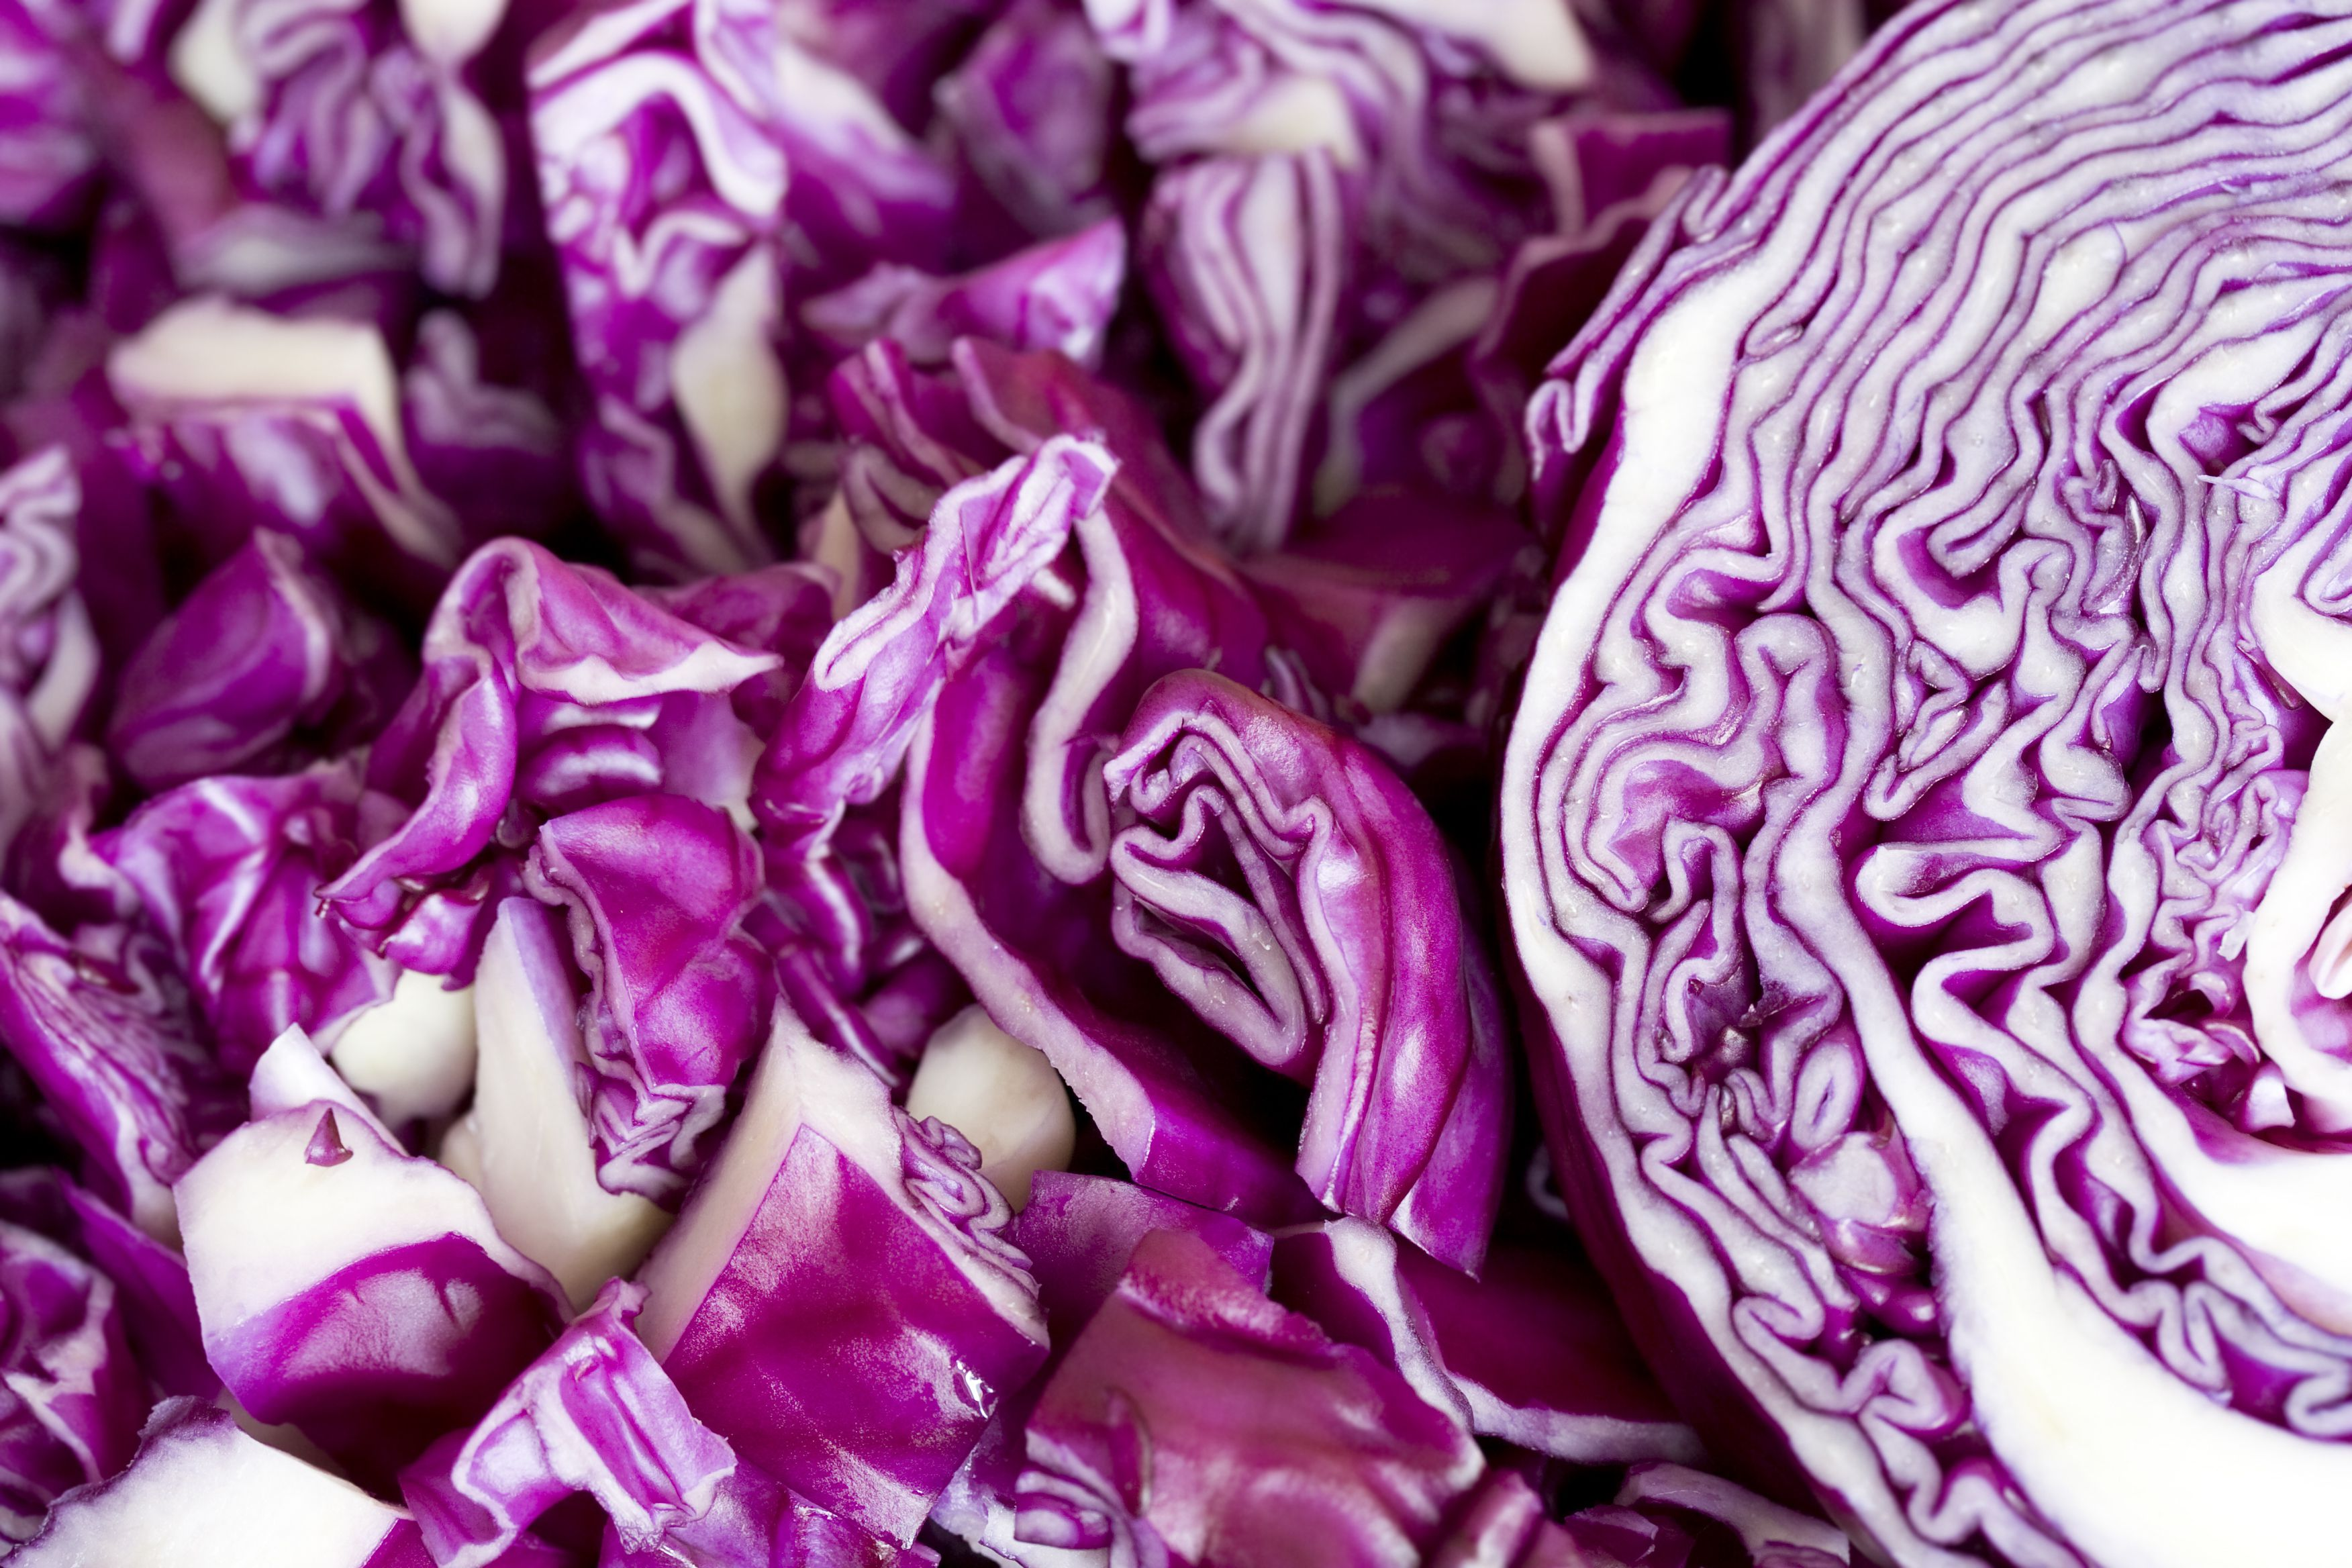 Chopped red cabbage in a close-up view